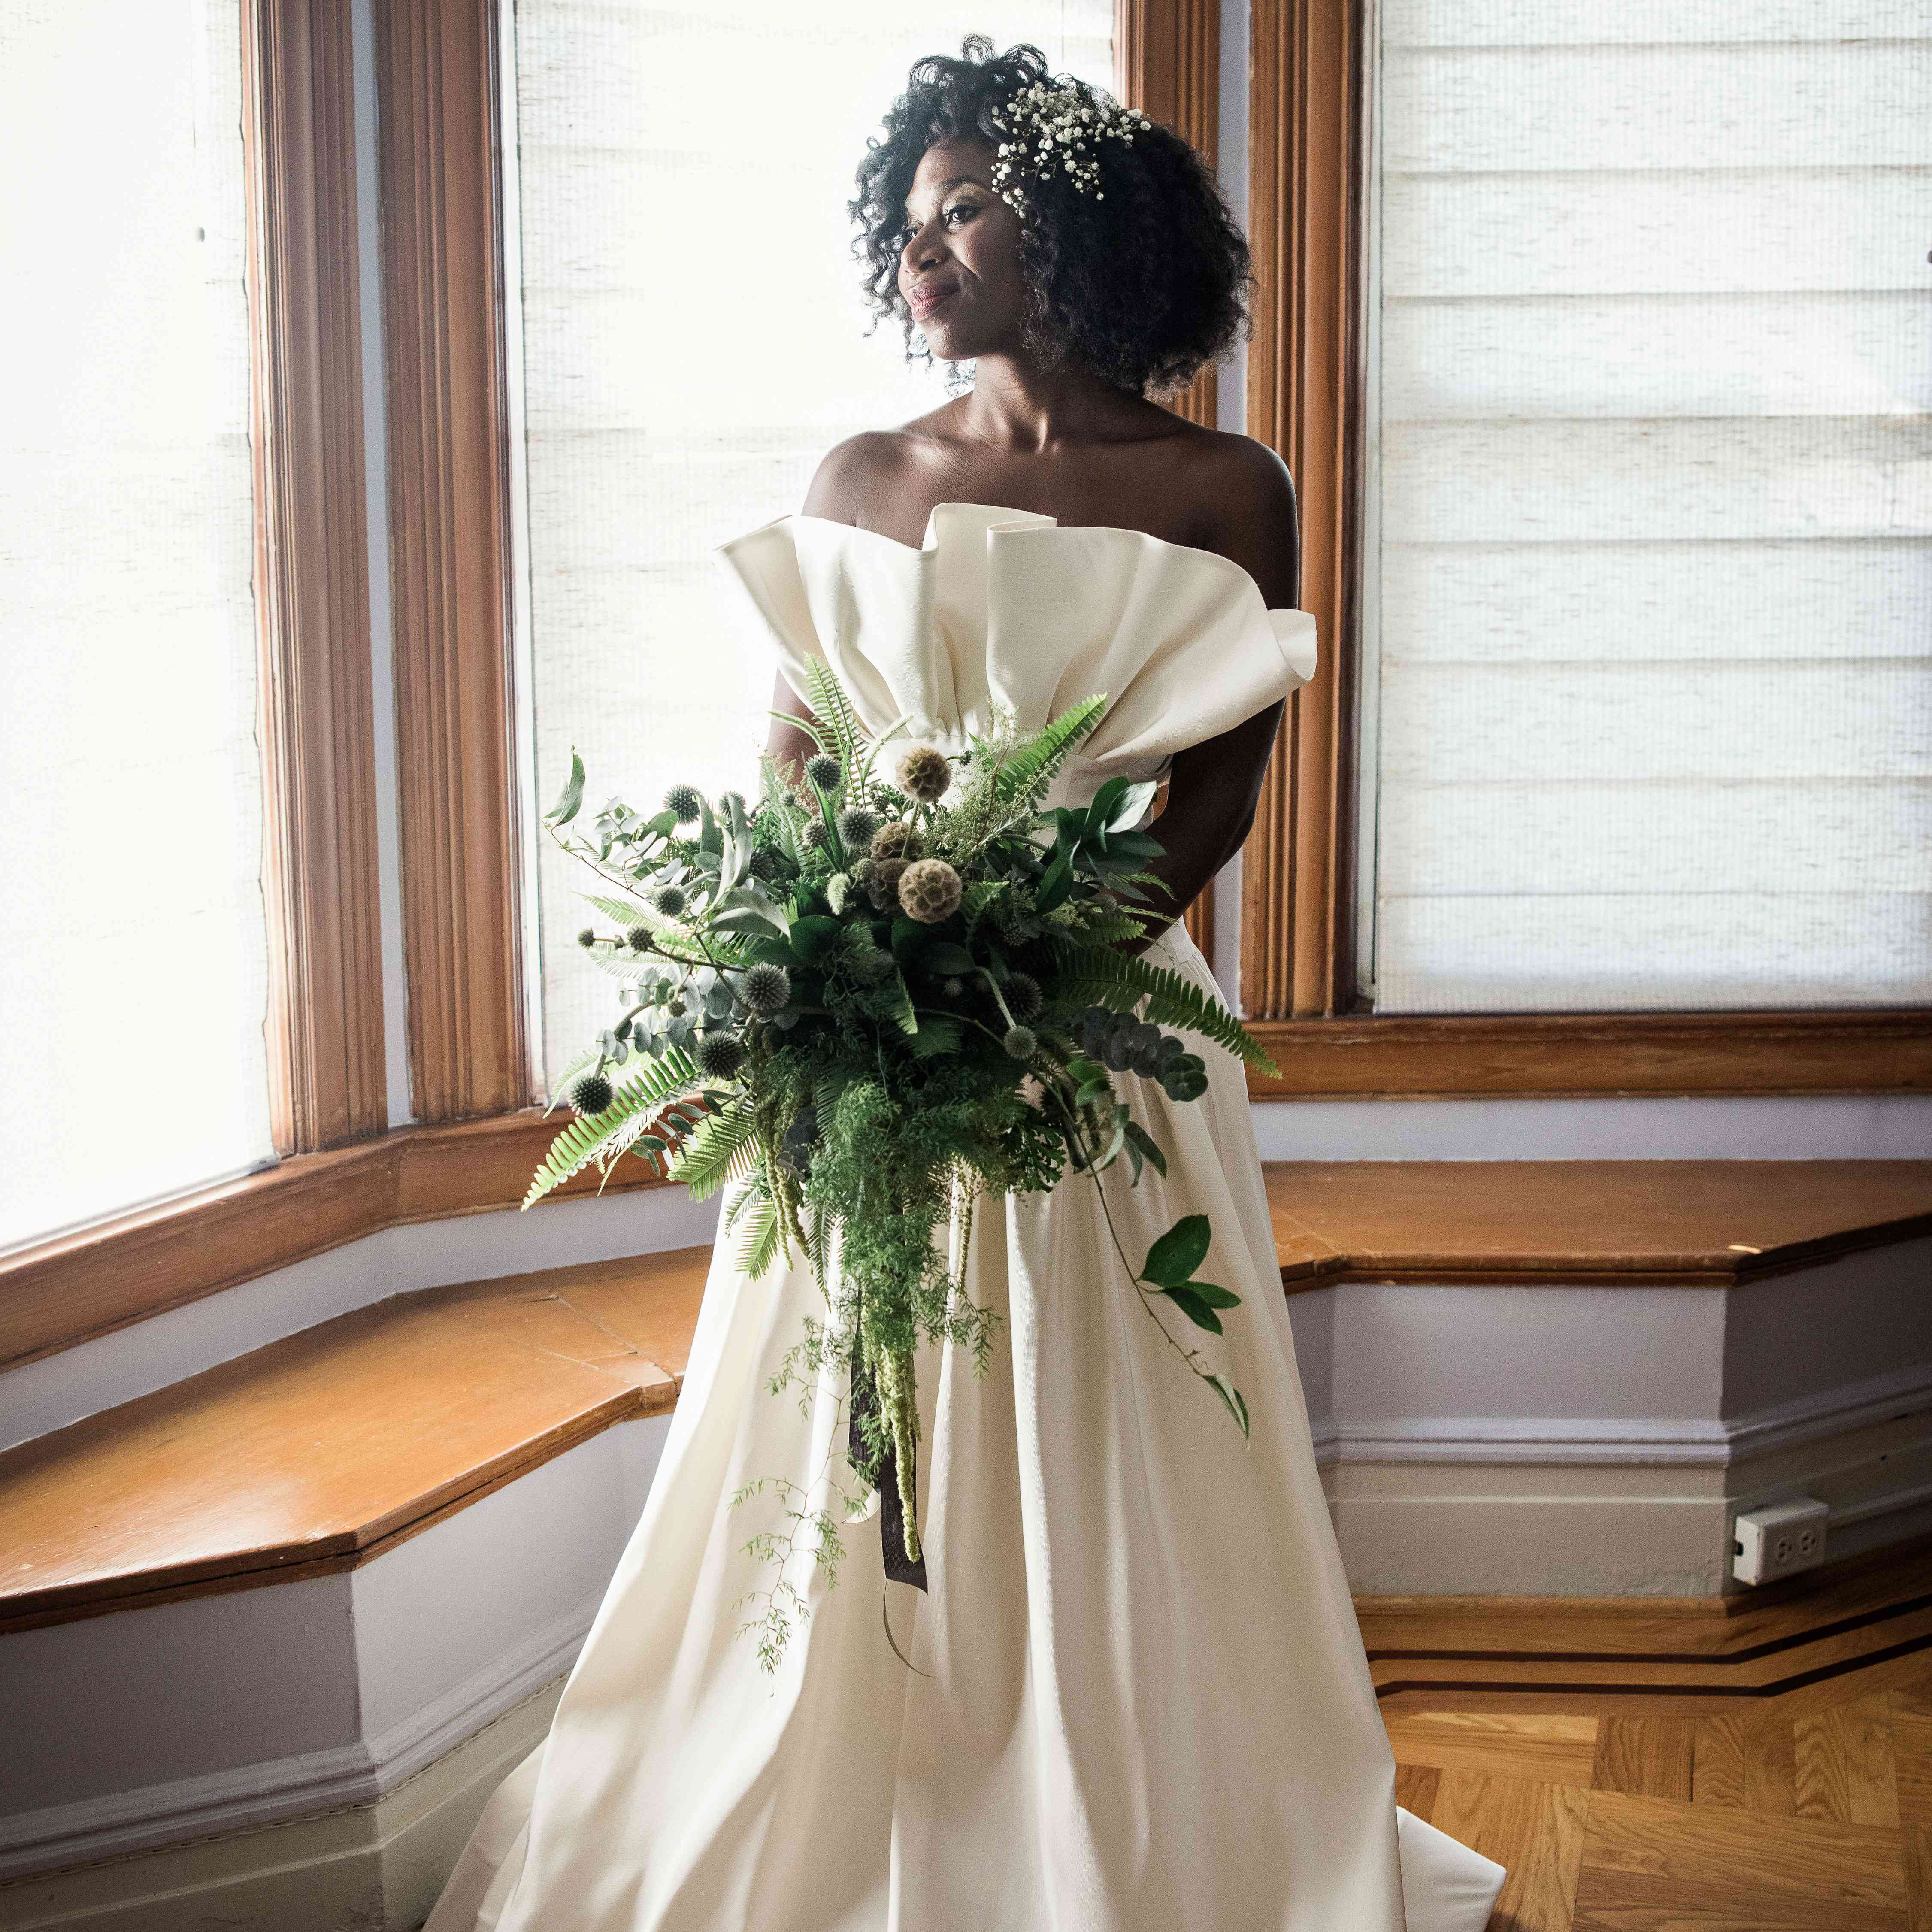 The bride with her bouquet